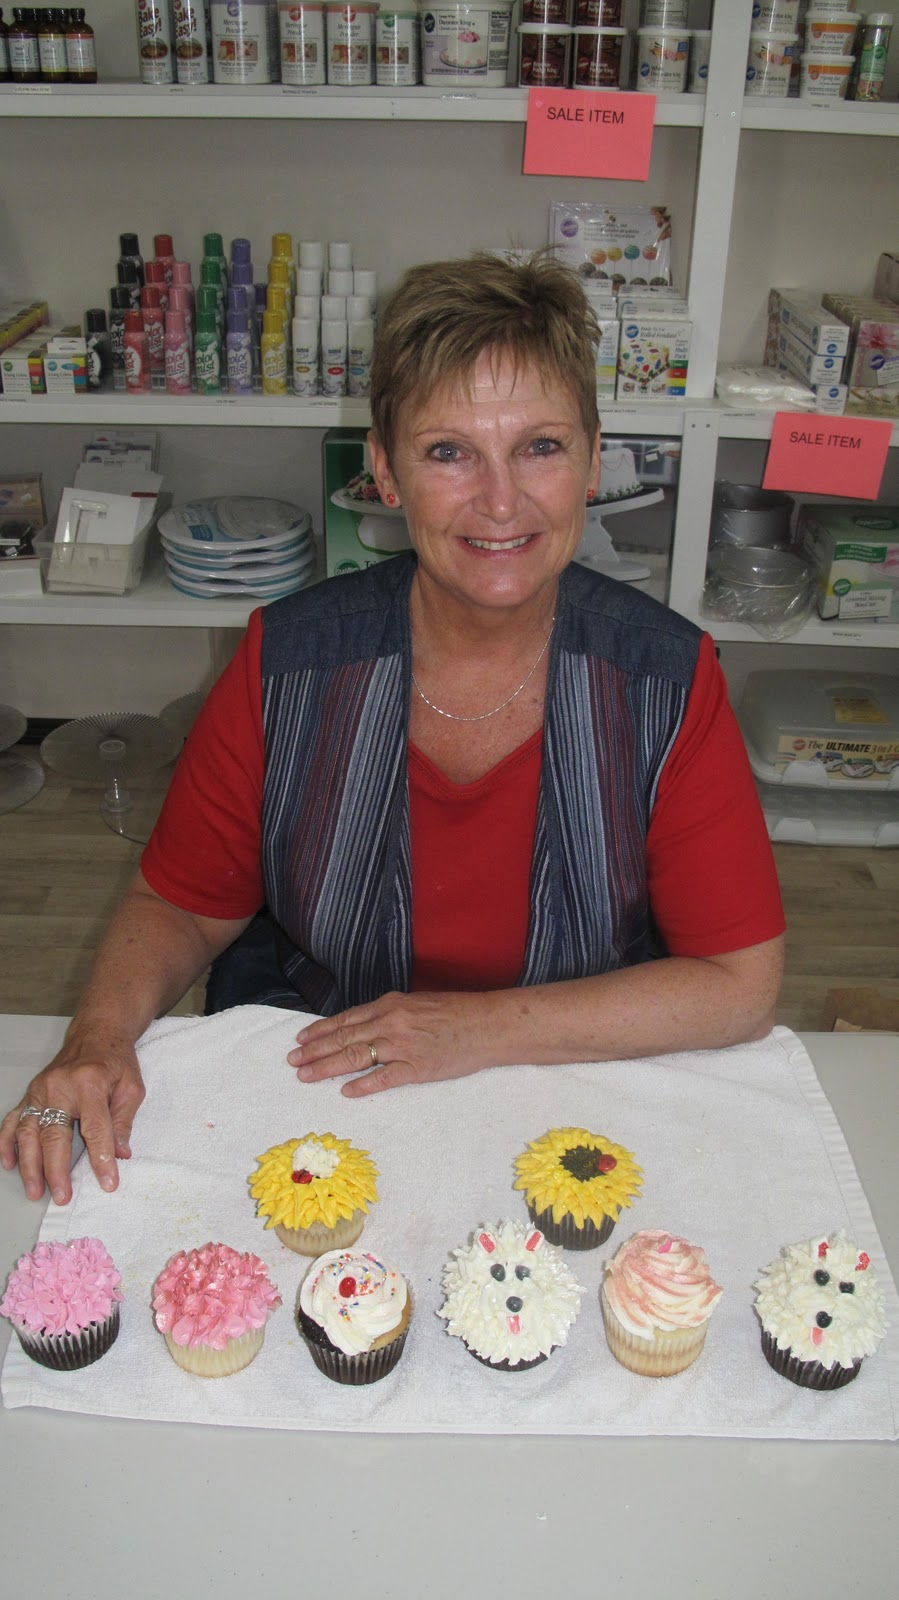 Elly s Studio of Cake Design: Girls Day Out Cupcake Class